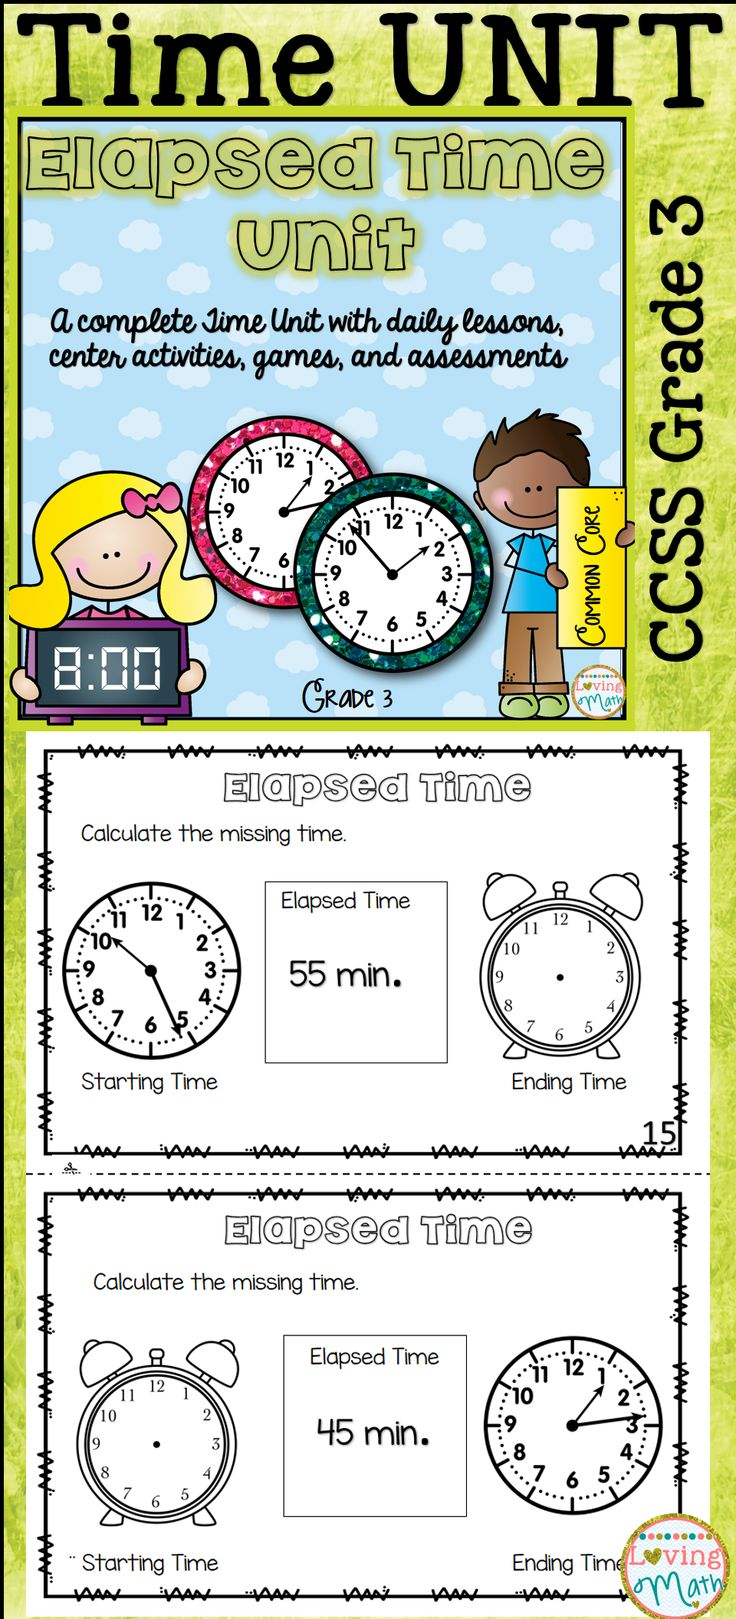 17 best ideas about elapsed time on pinterest teaching fractions fractions and multiplication. Black Bedroom Furniture Sets. Home Design Ideas